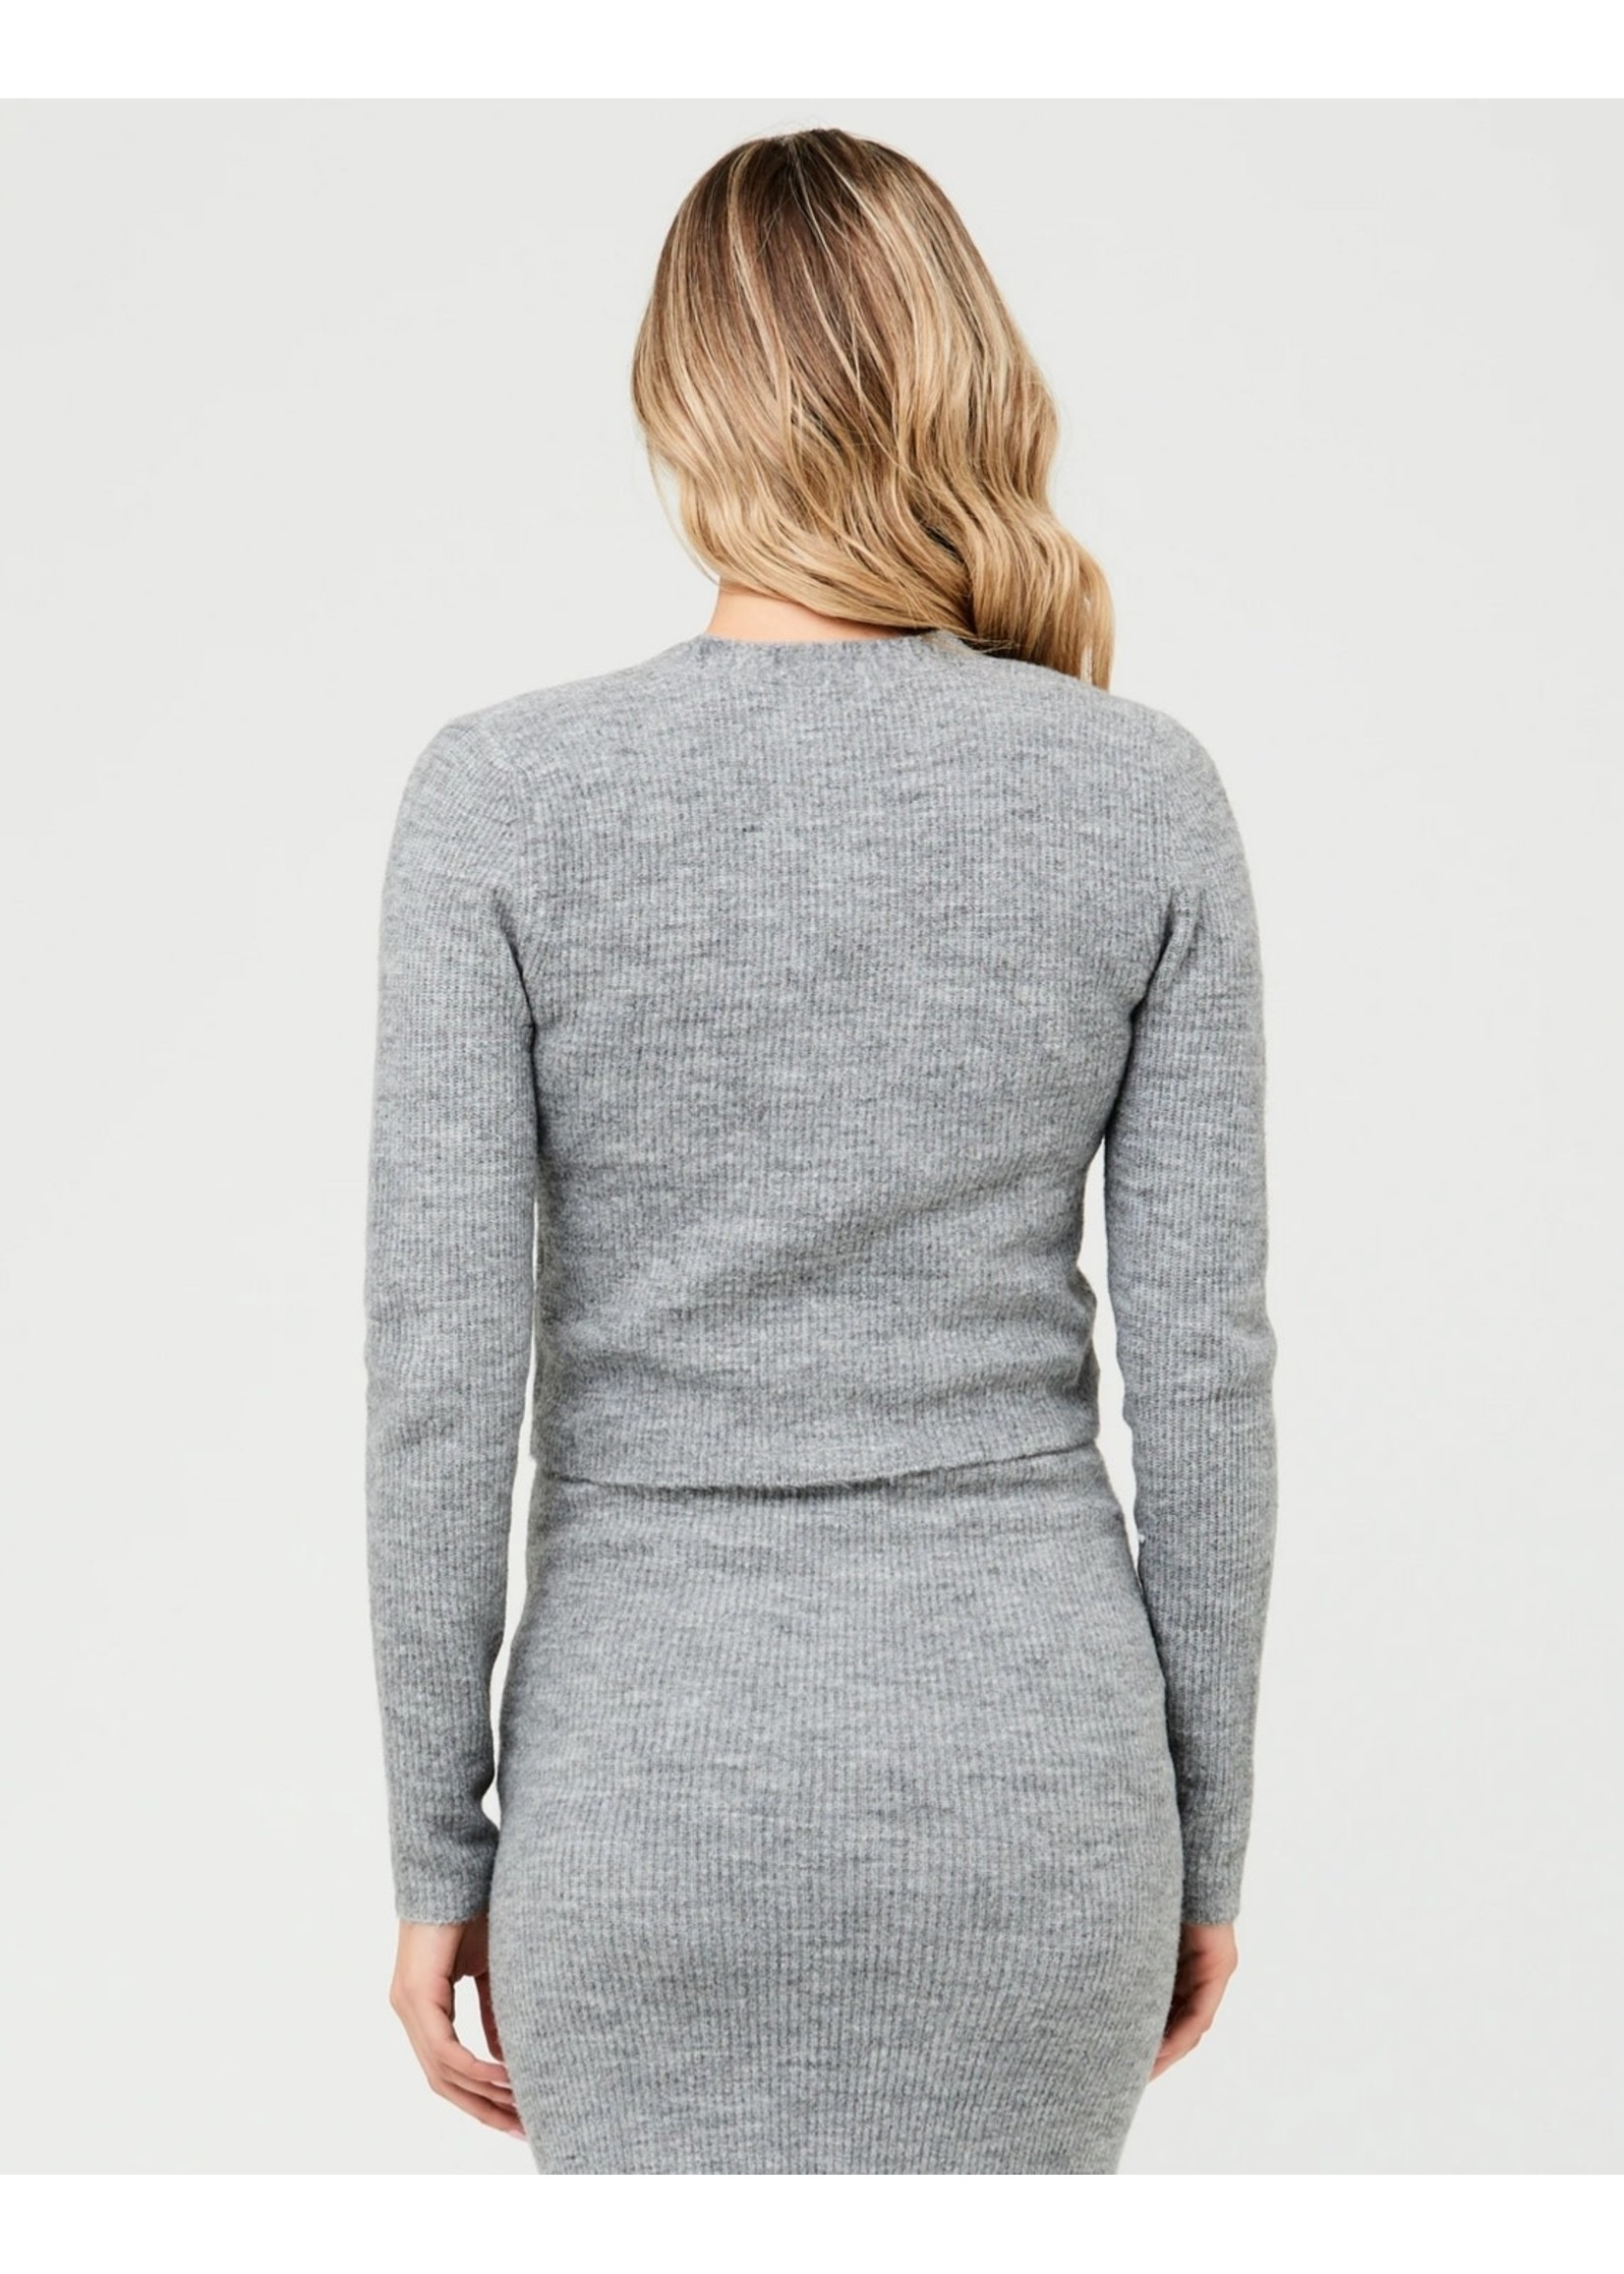 Ripe Maternity Ripe Maternity, Trixie Crop Cardigan in Charcoal Marle